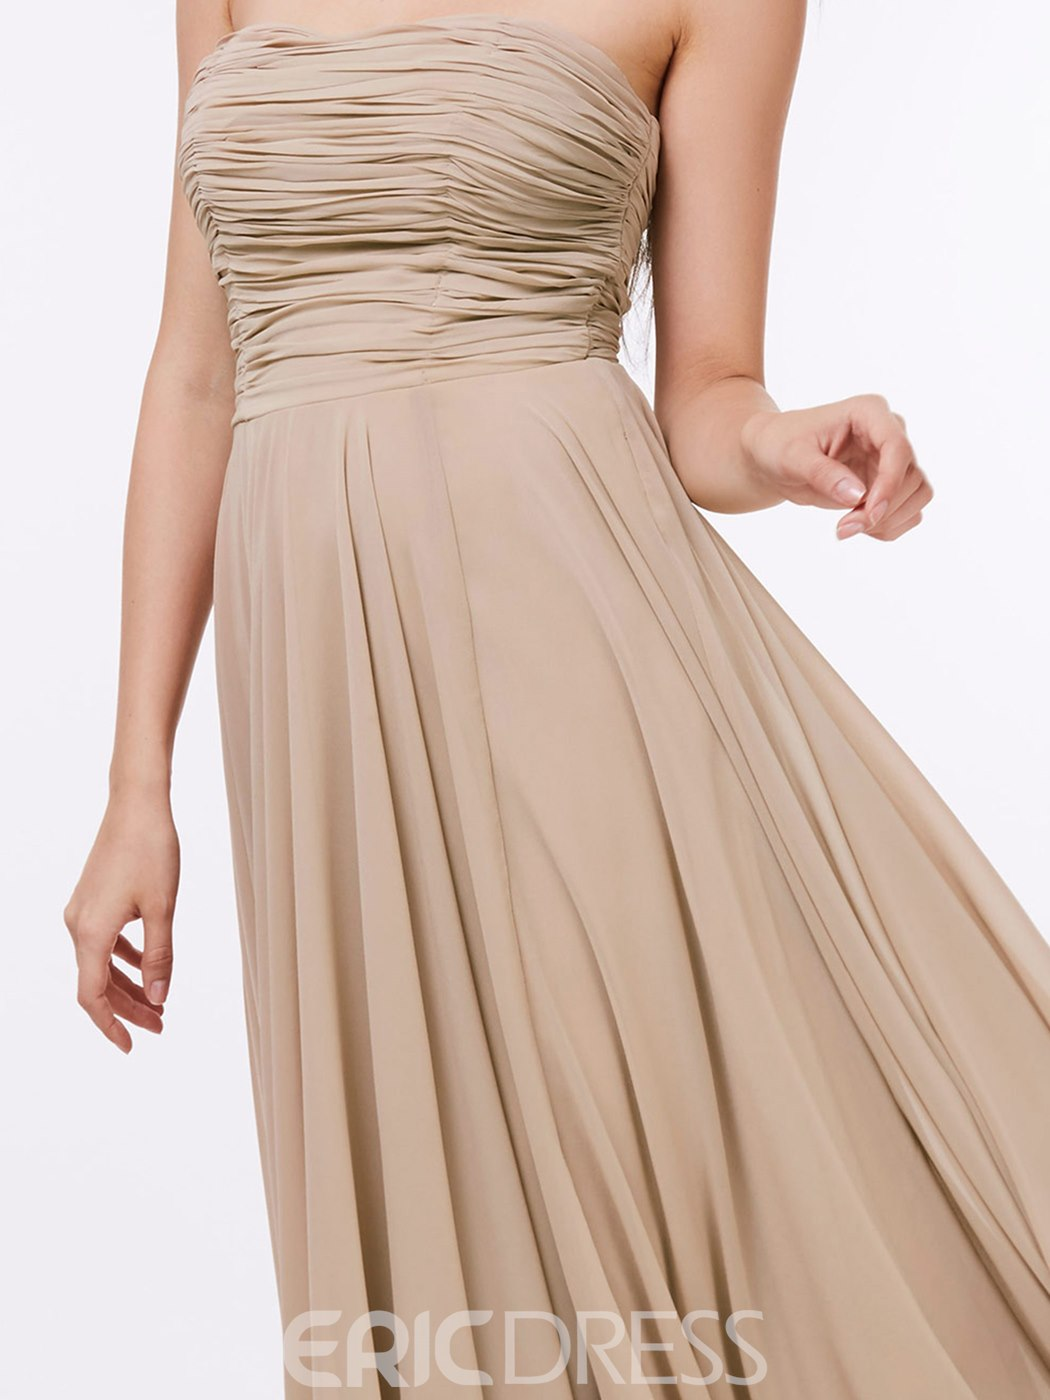 Ericdress A-Line Strapless Ruched Ankle-Length Prom Dress